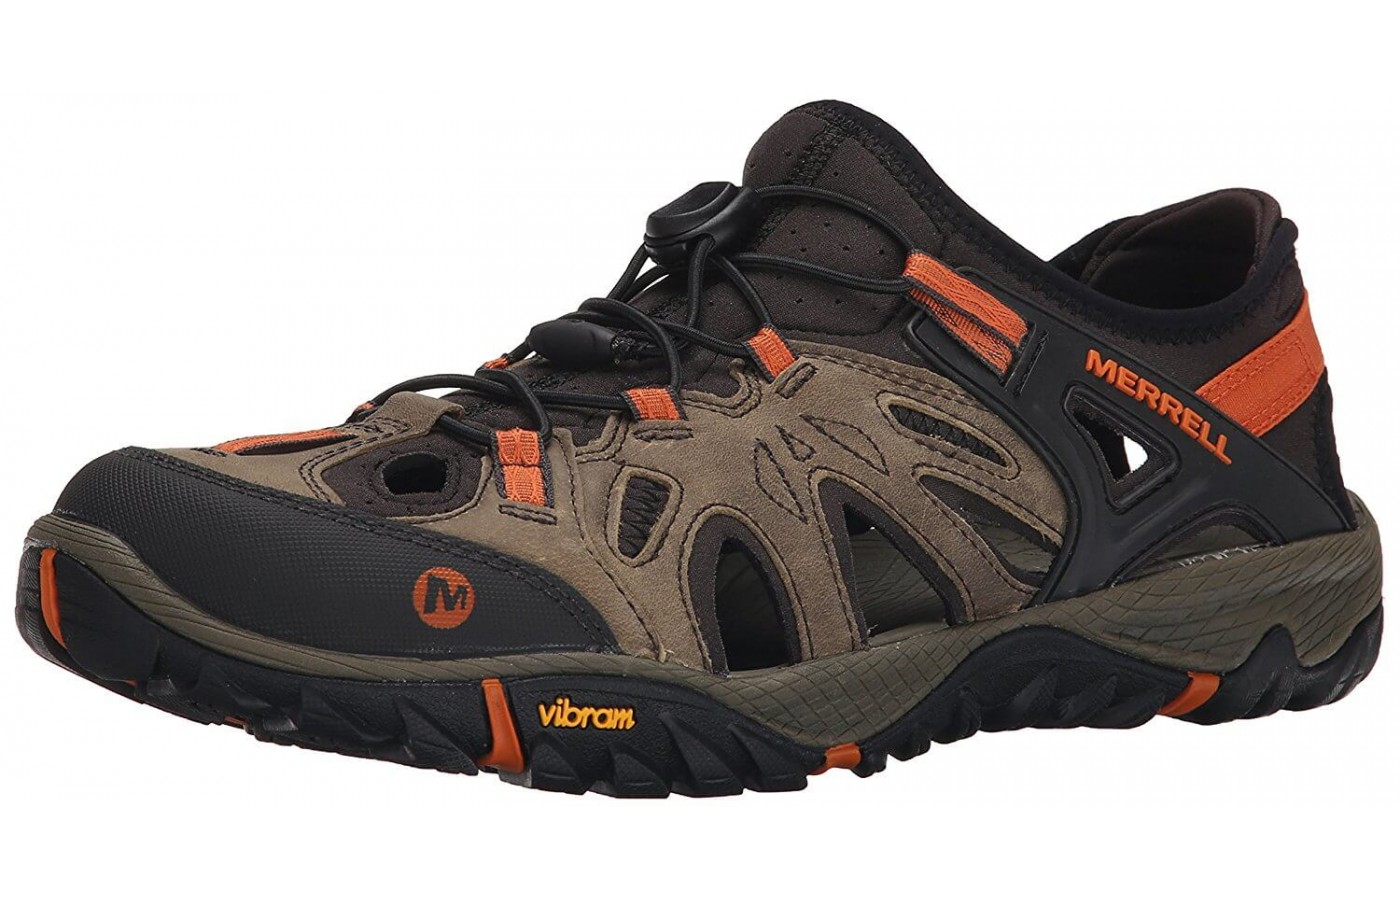 The Merrell All Out Blaze Sieve has an elastic back and elastic laces for a convenient slip-on style.